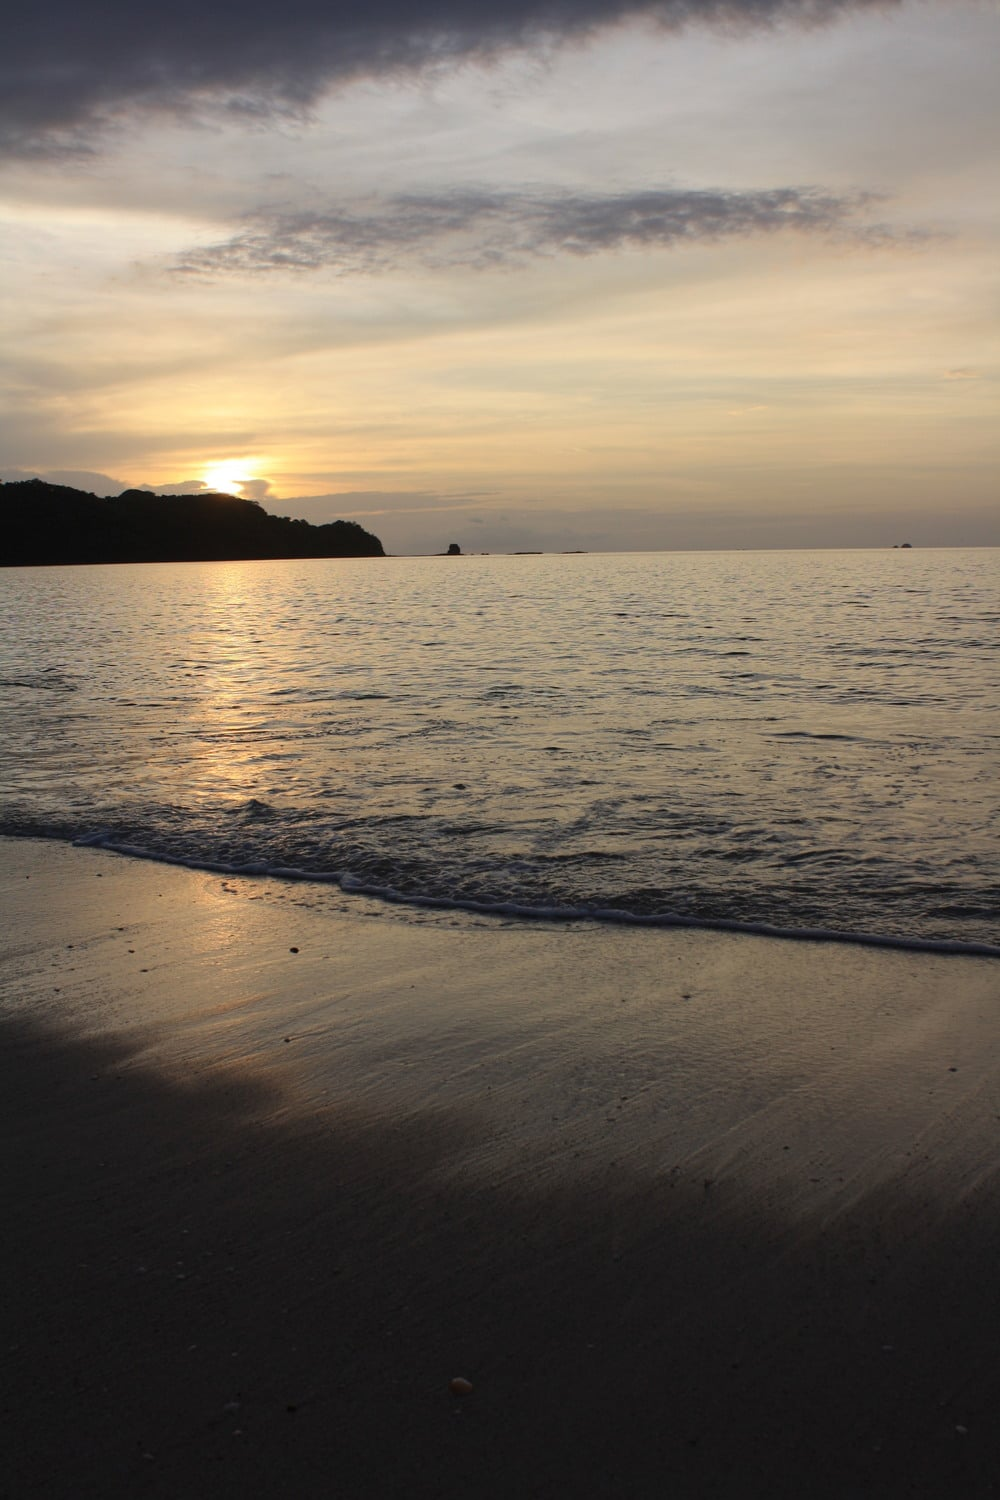 Playa Conchal, Costa Rica